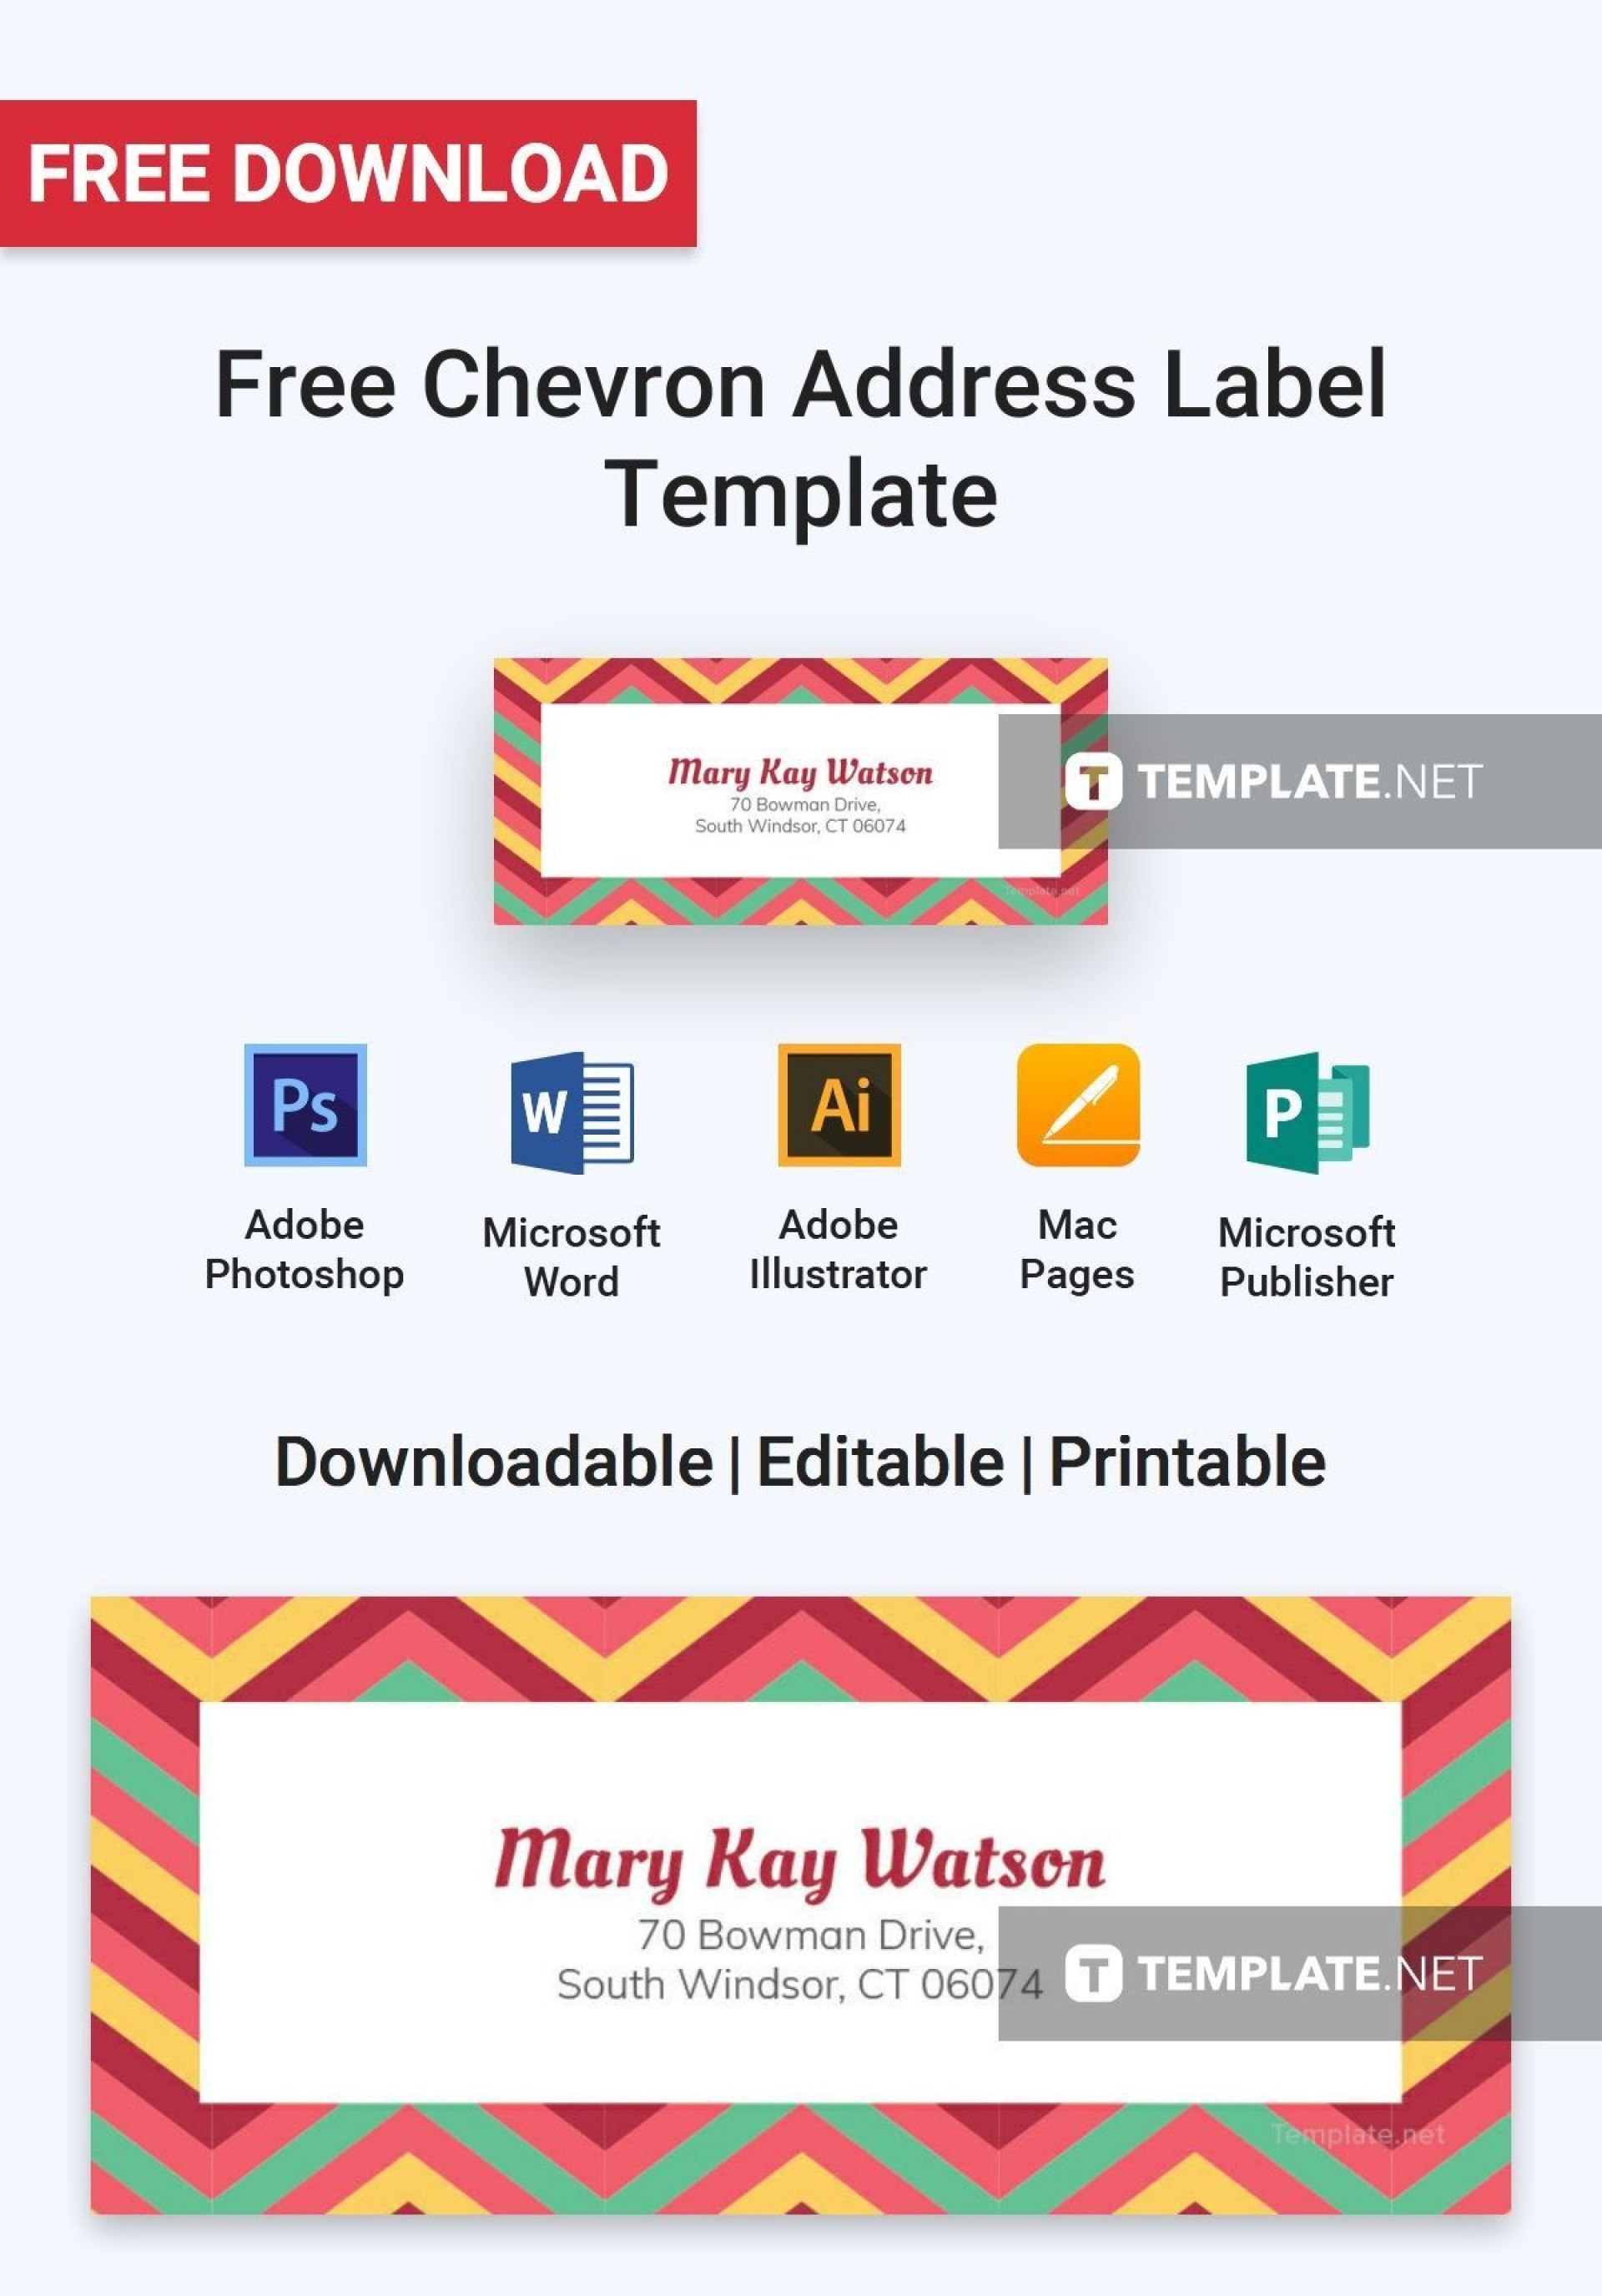 005 Breathtaking Addres Label Template For Mac Page Sample  Return Avery 51601920